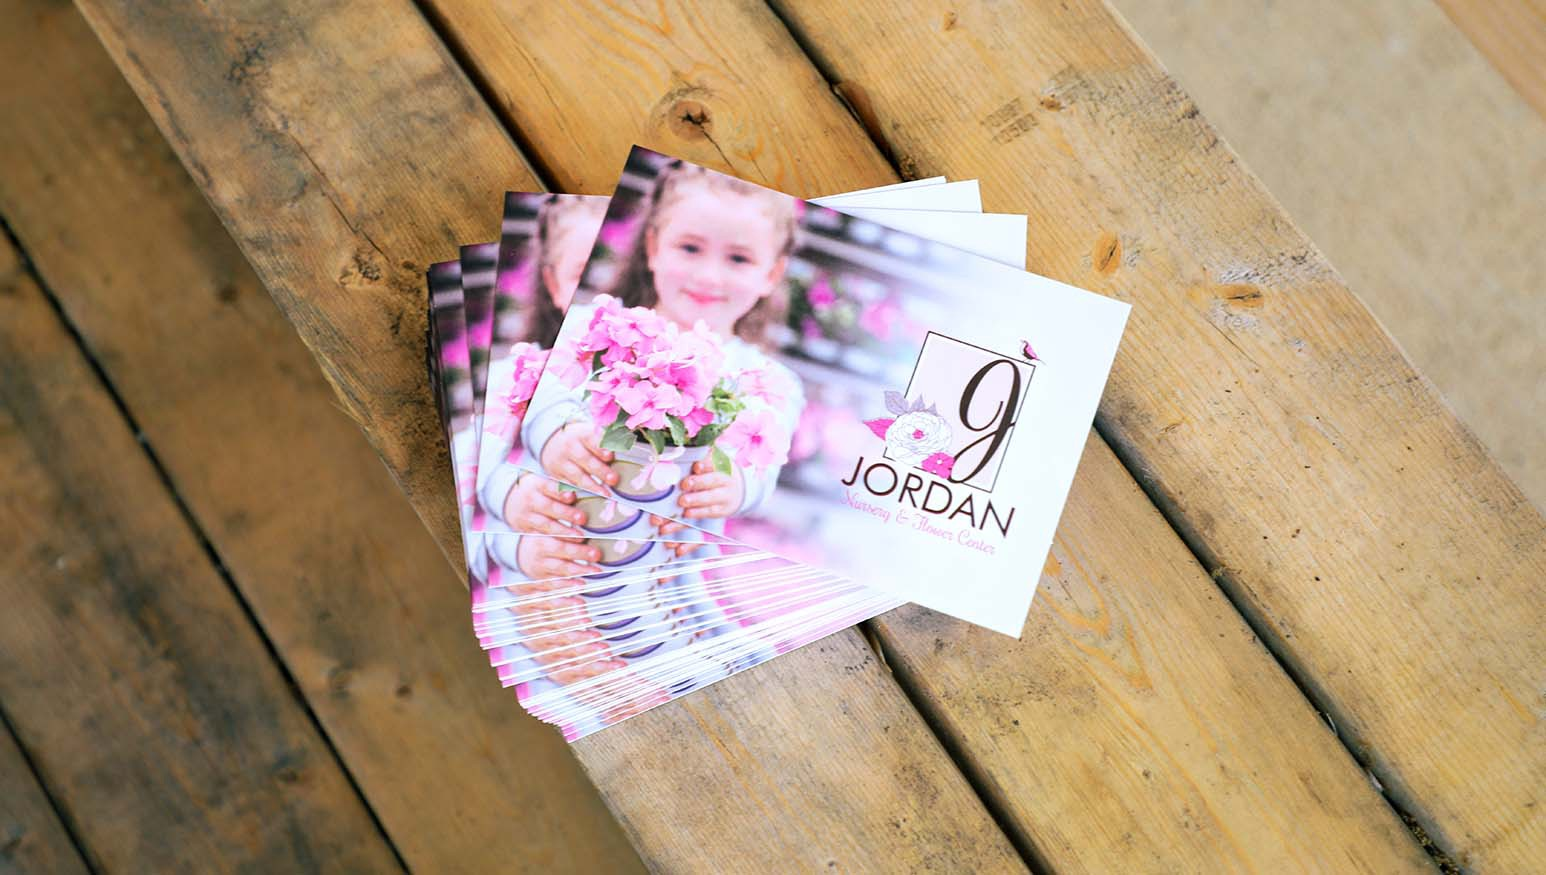 Handing out postcards is one of the most cost-effective ways for brands to reach their target audience. You can raise brand awareness, advertise promotions, and more!